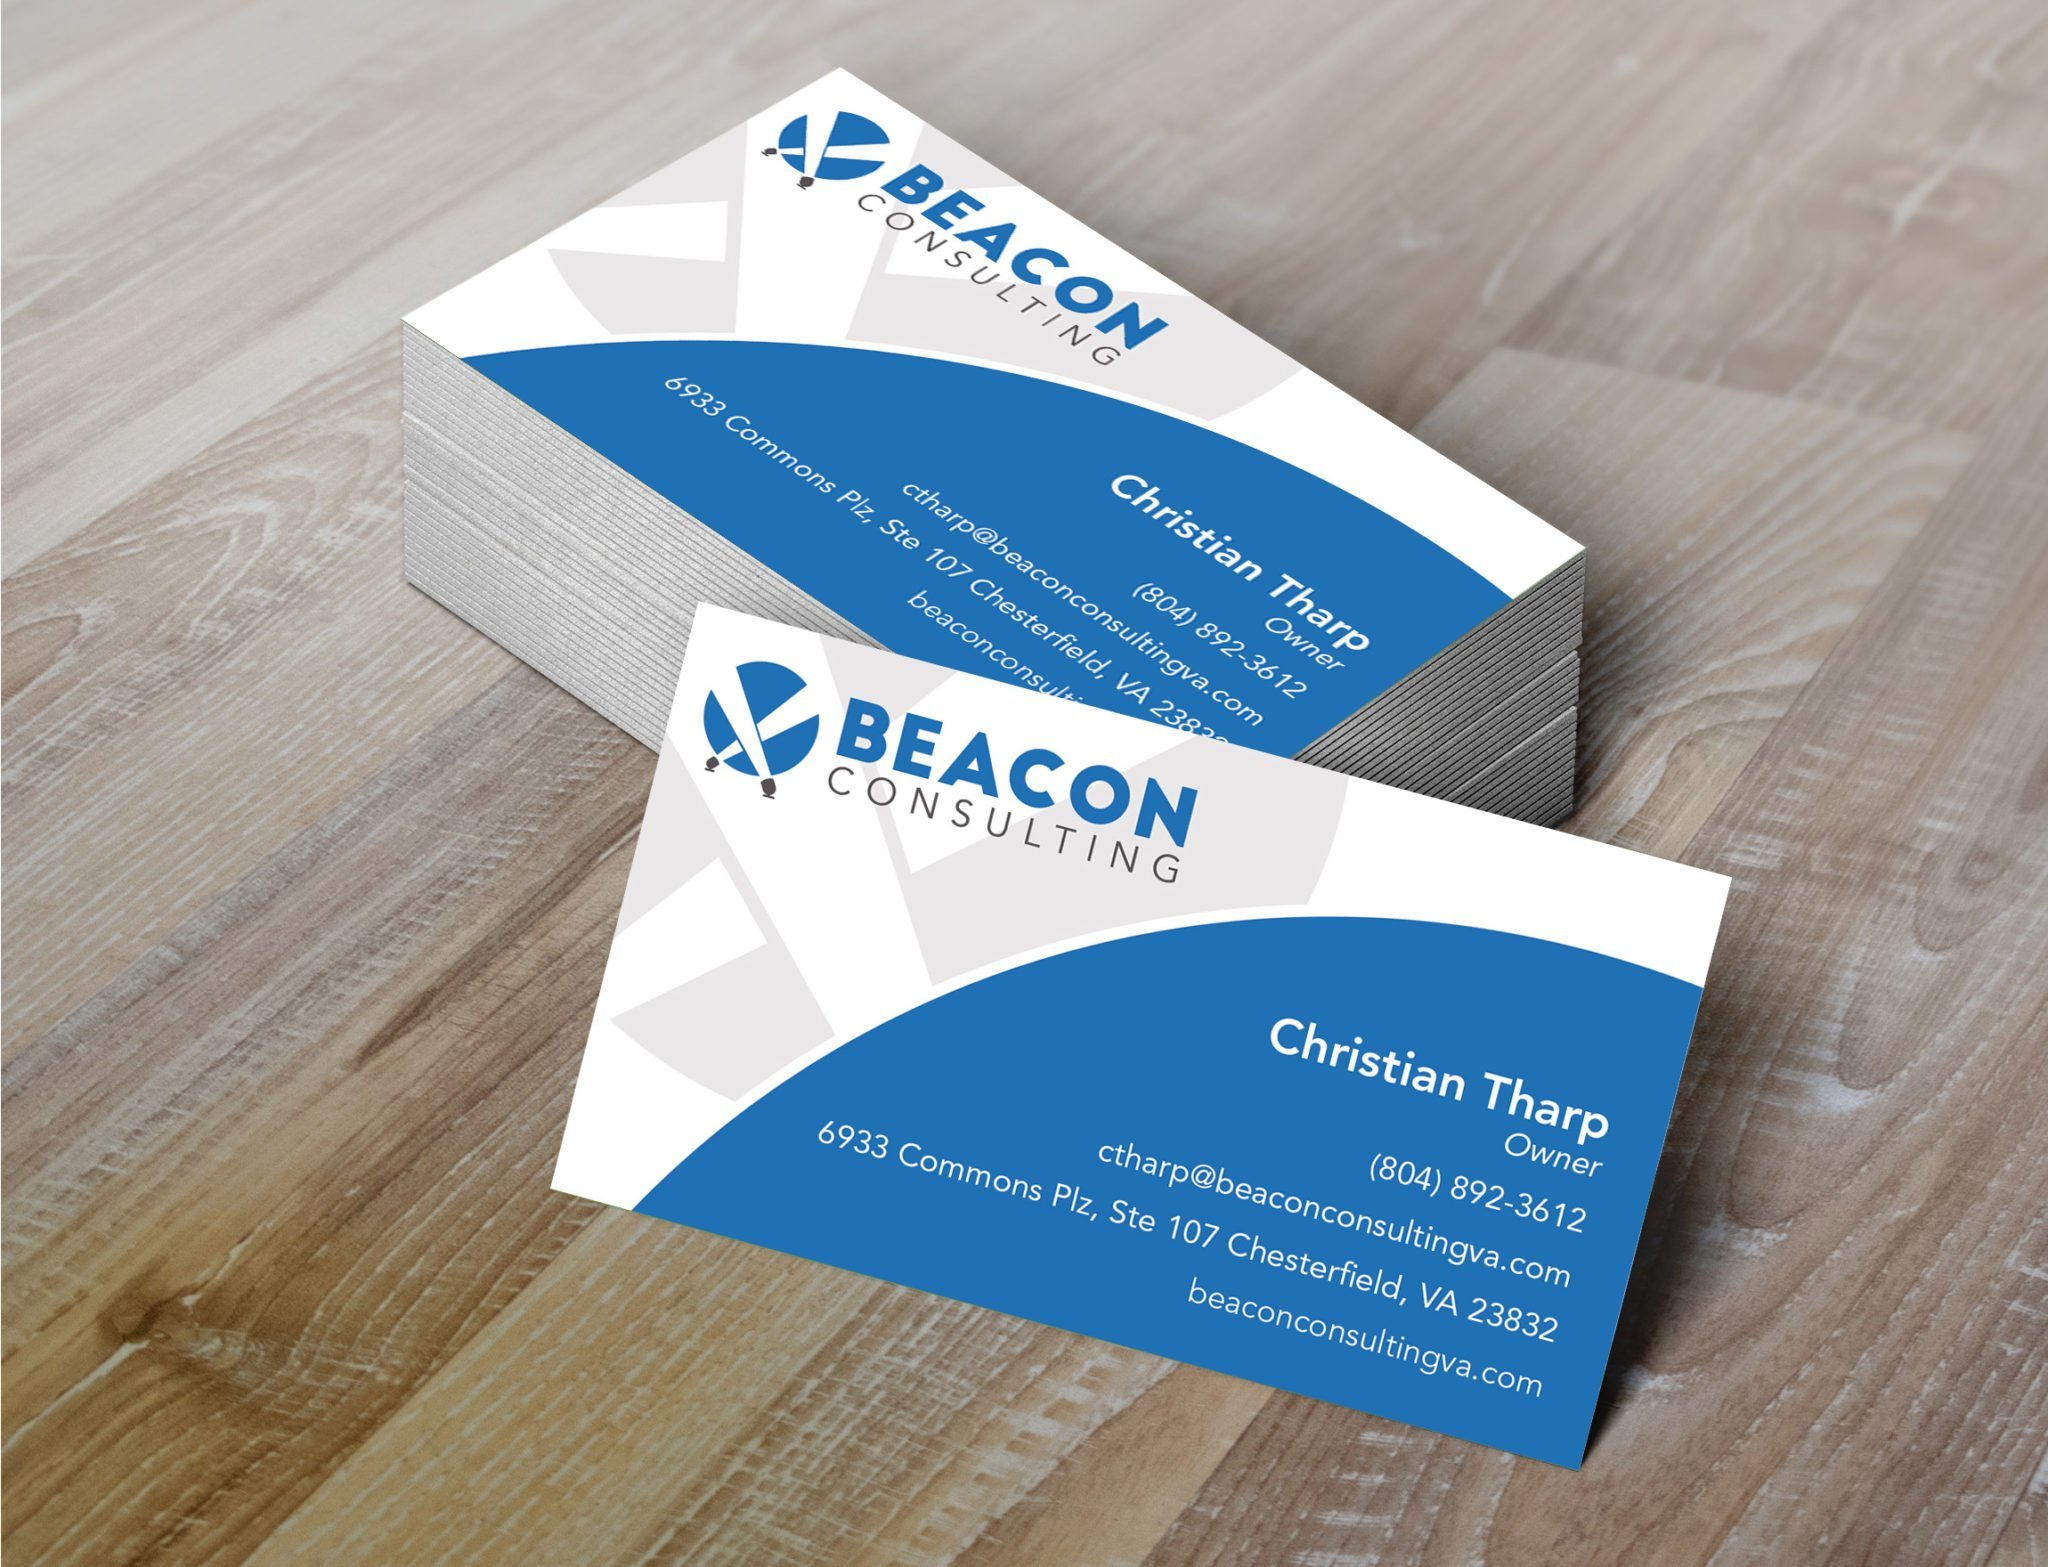 Beacon Consulting | Emerge